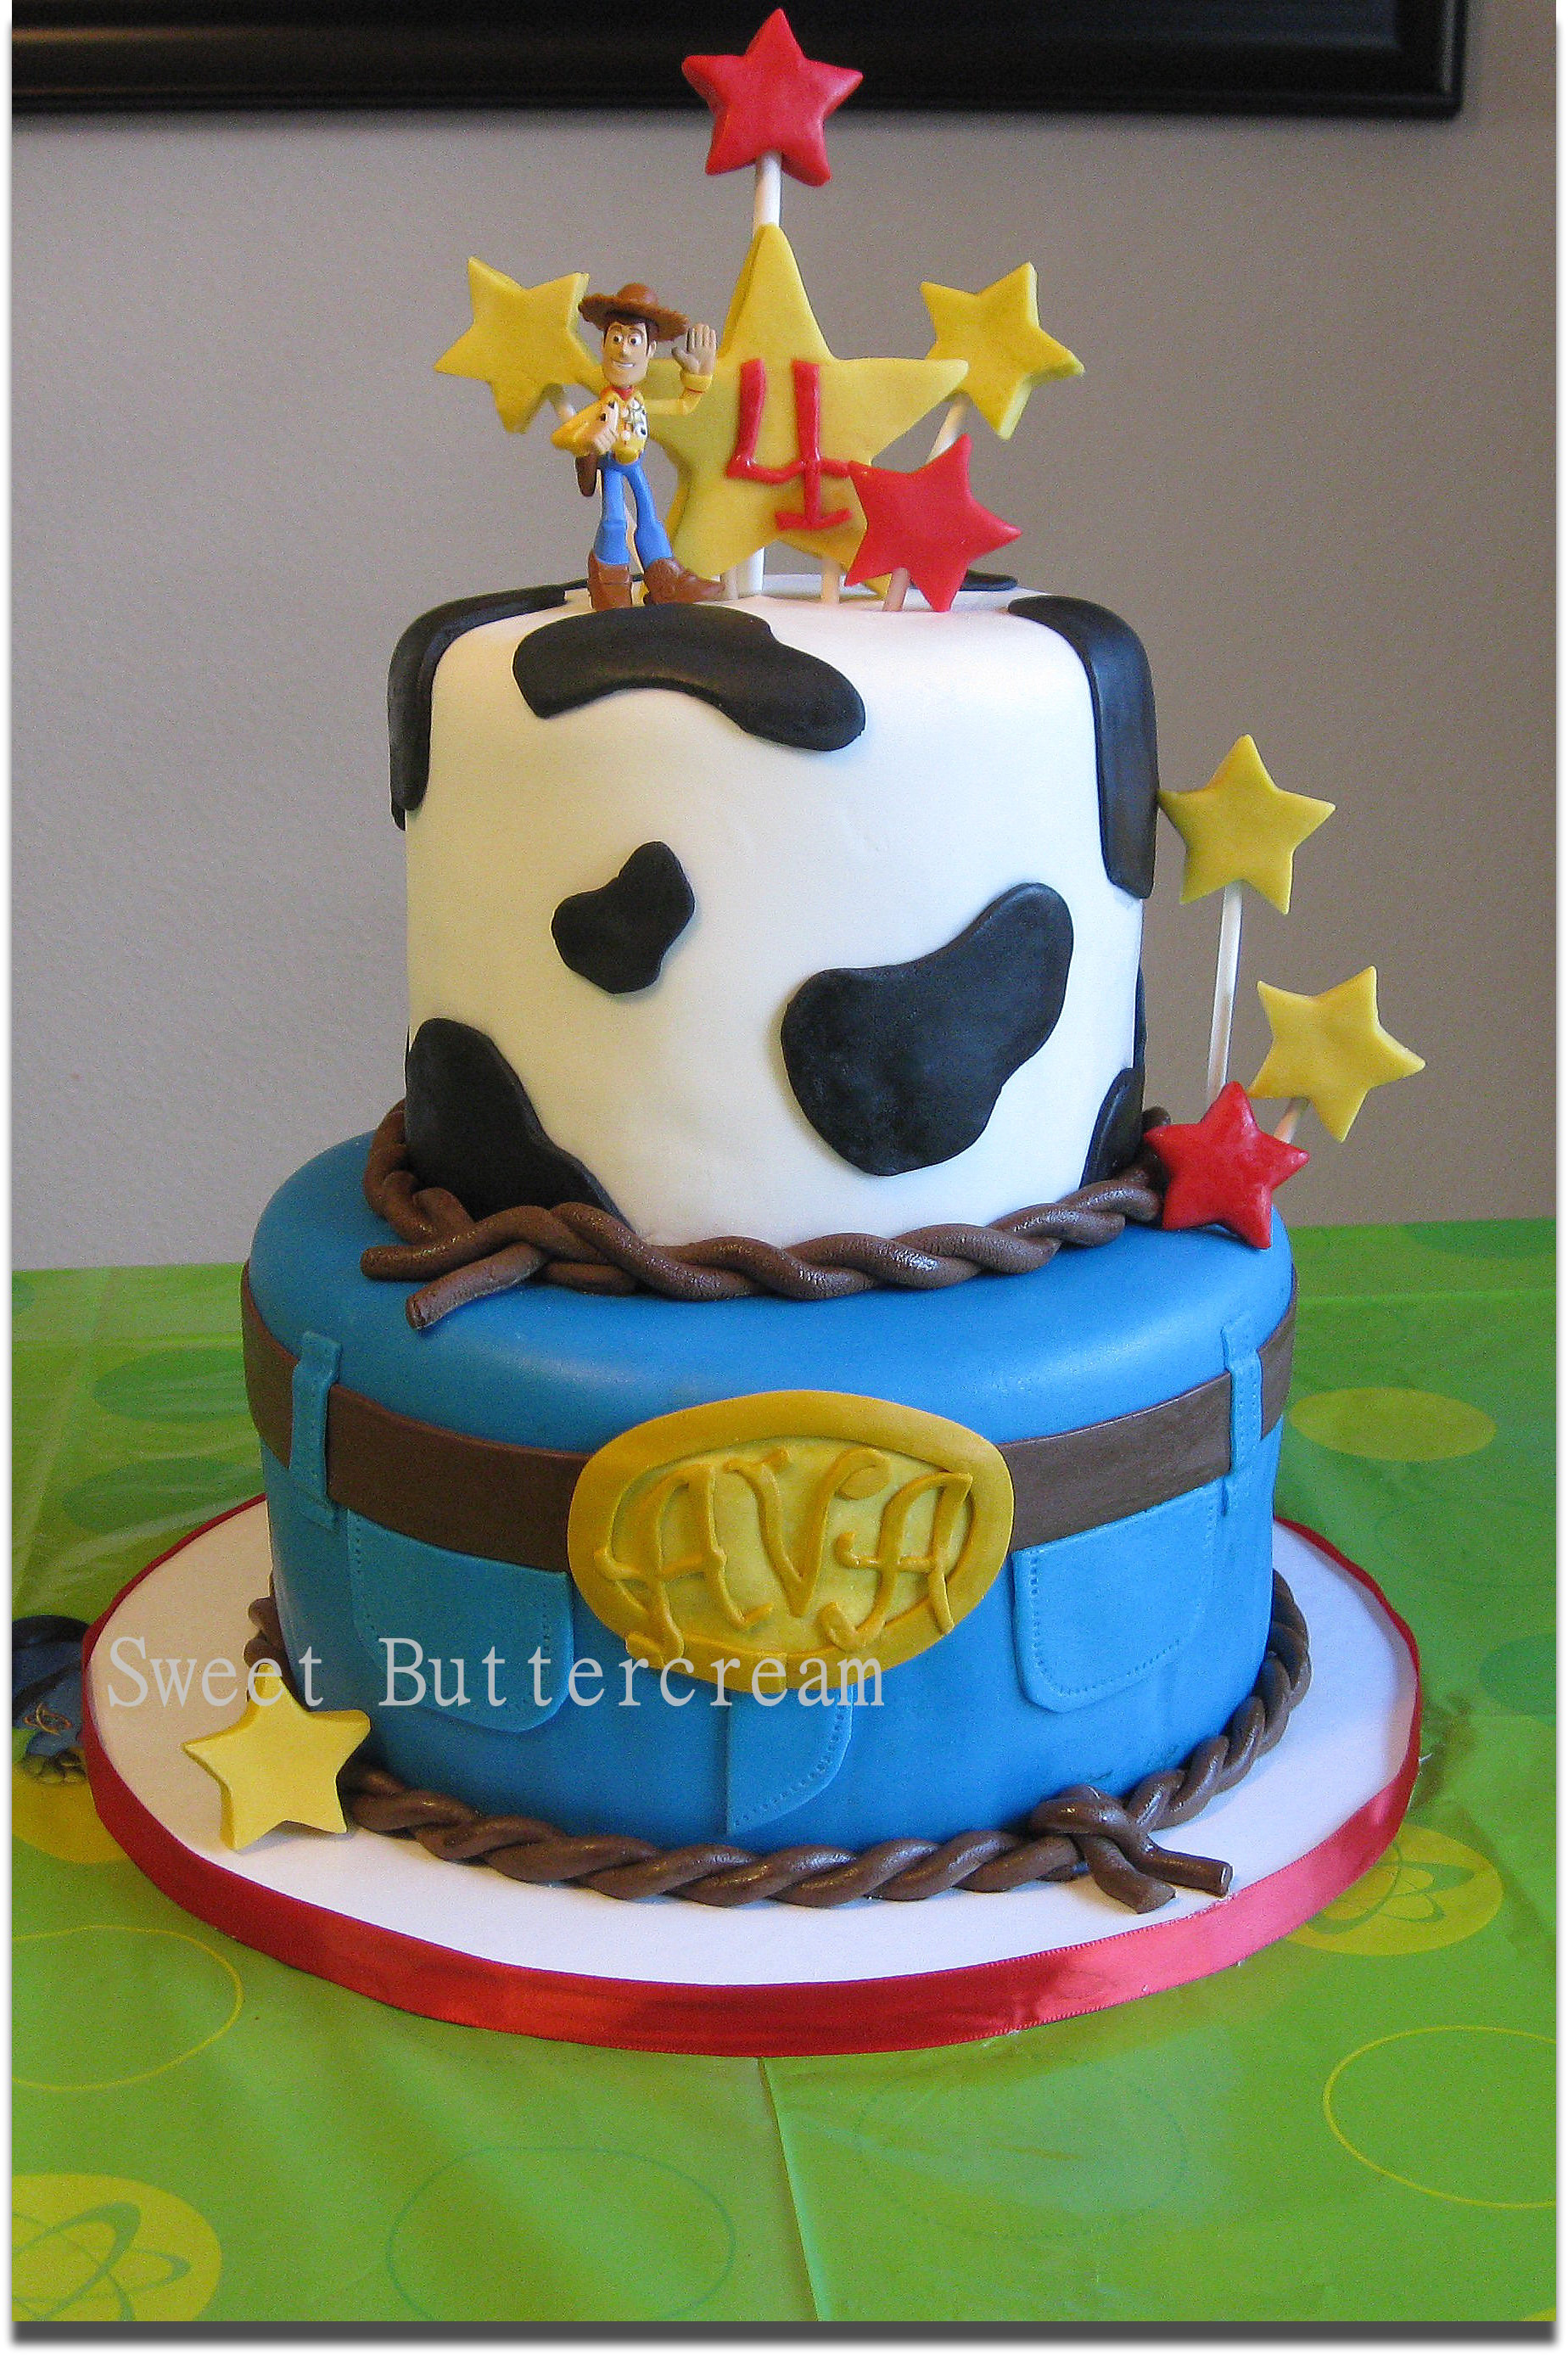 Best ideas about Toy Birthday Cake . Save or Pin Birthday Cakes Now.